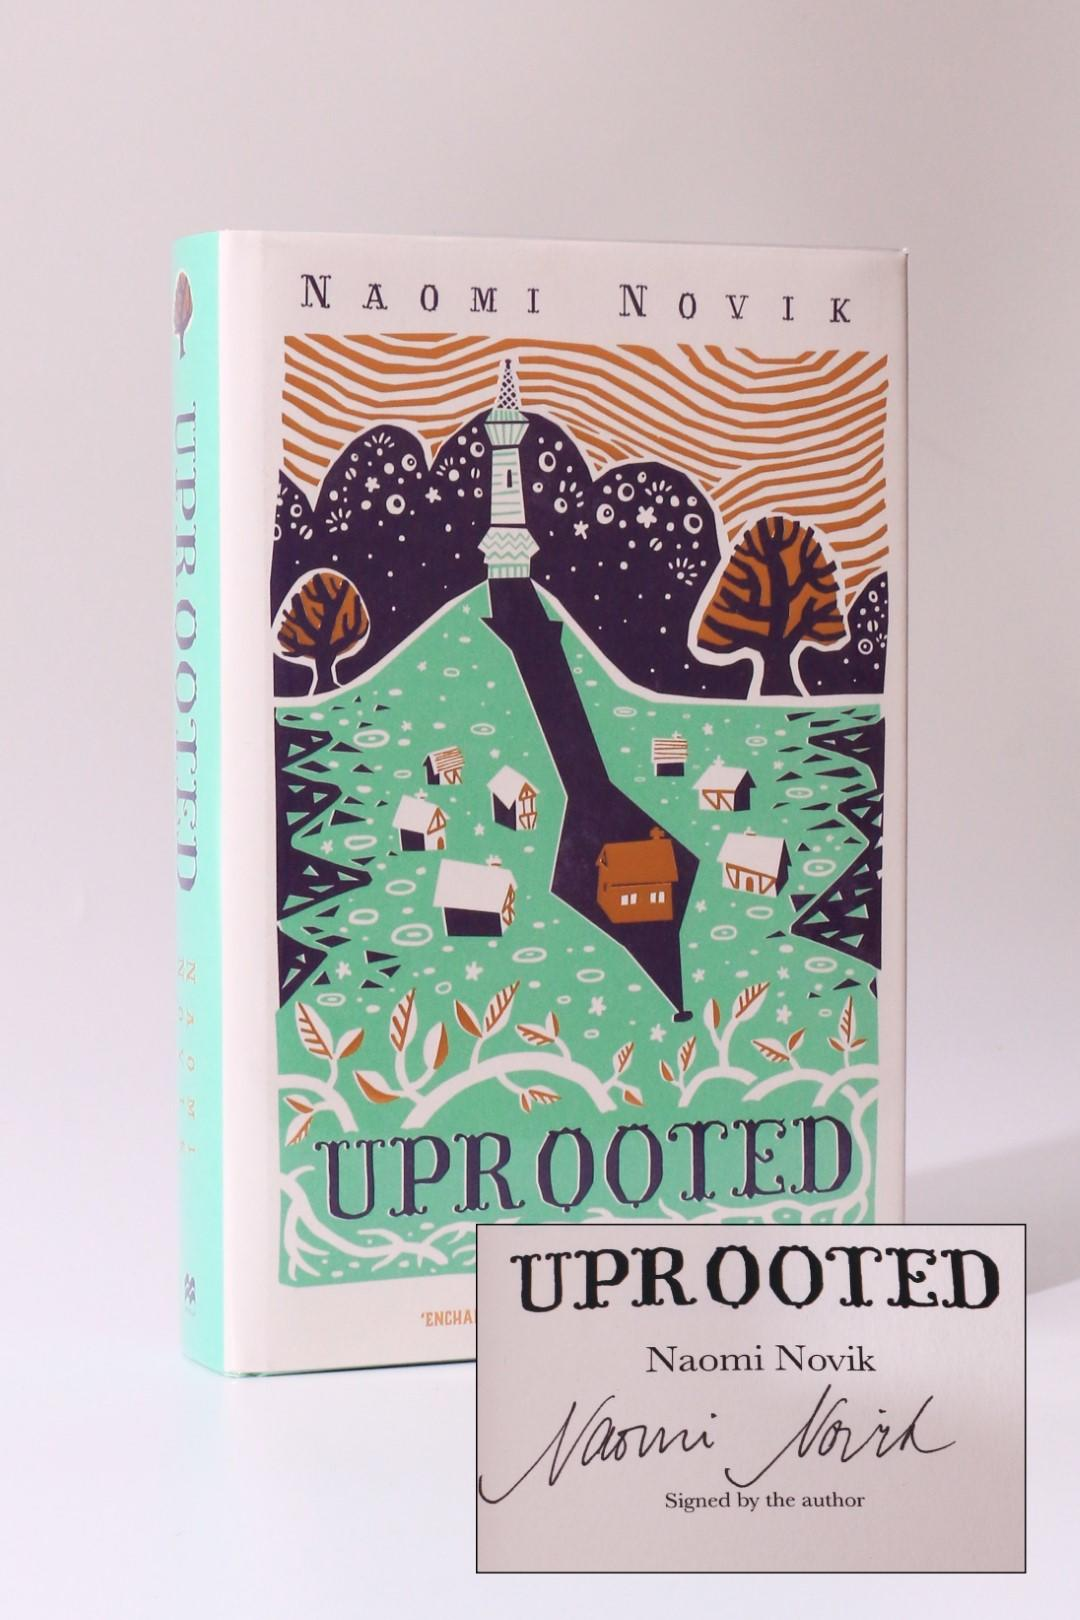 Naomi Novik - Uprooted - Macmillan, 2015, Signed First Edition.